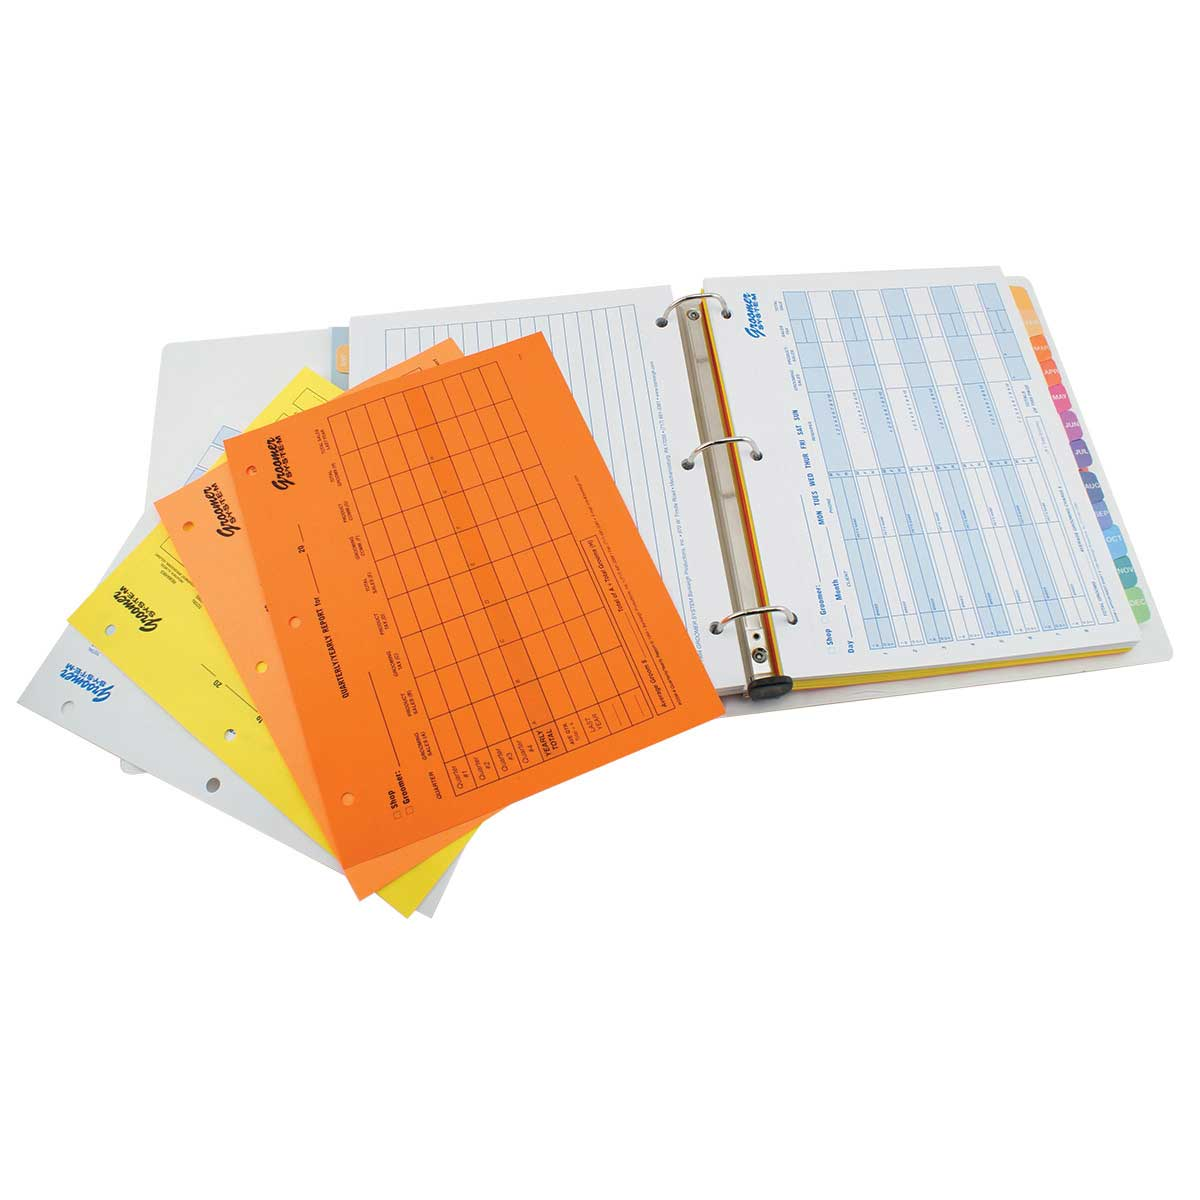 Groomer System Complete Binder with Appointment Sheets for Professional Groomers